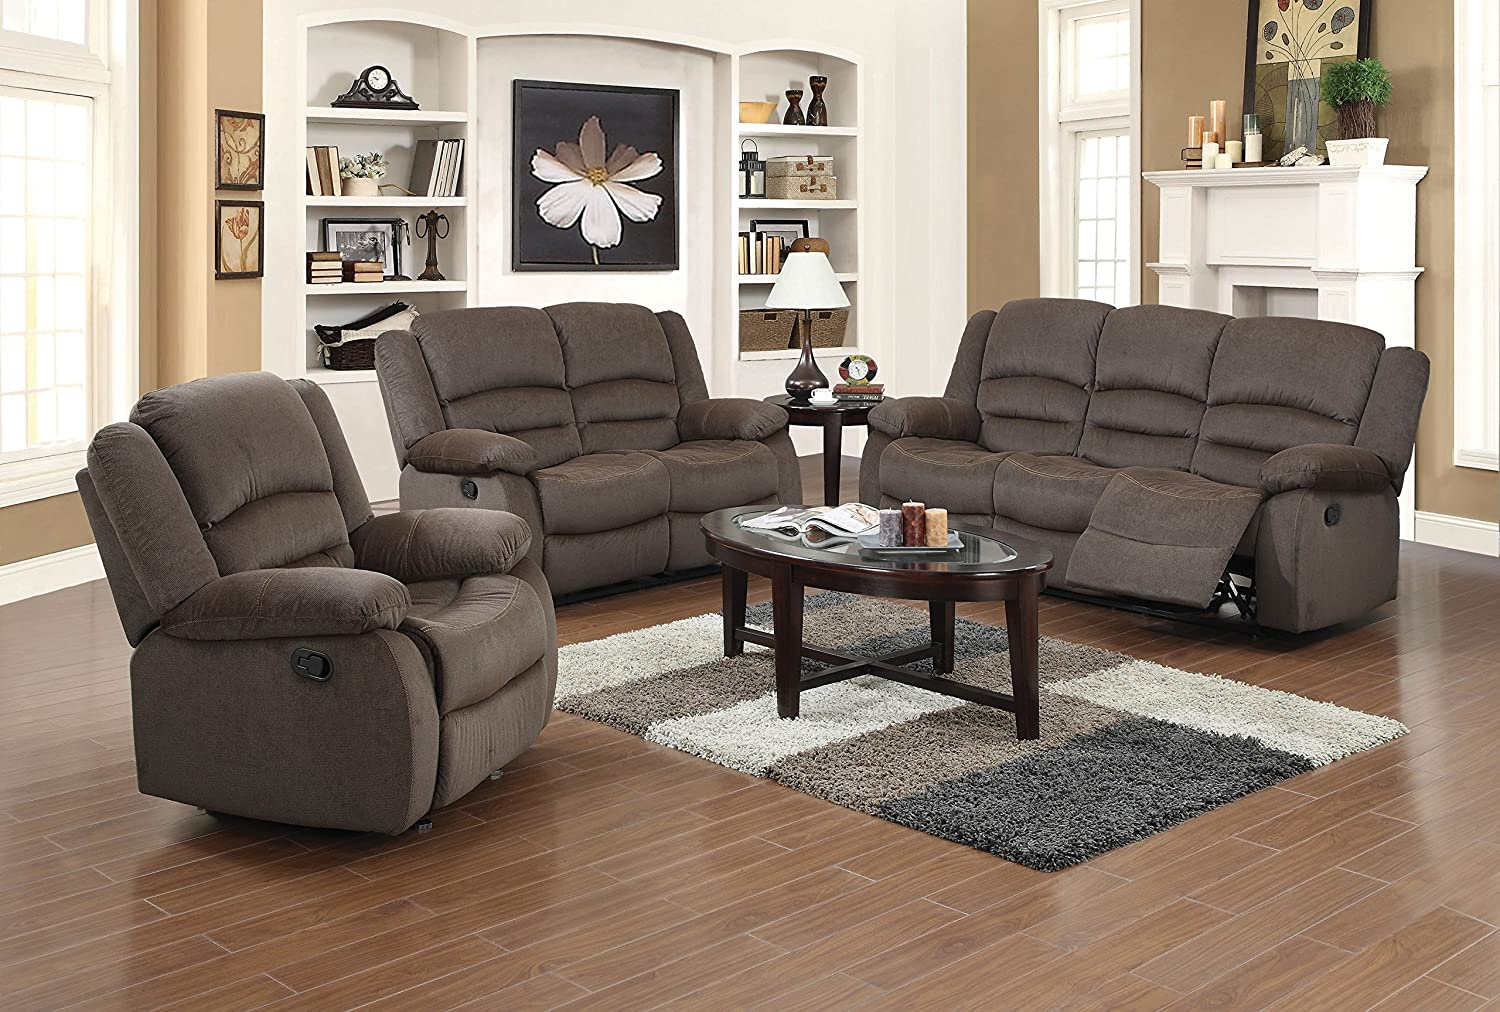 Sofa and loveseat sets under 500 top living room sets for Leather and fabric living room sets